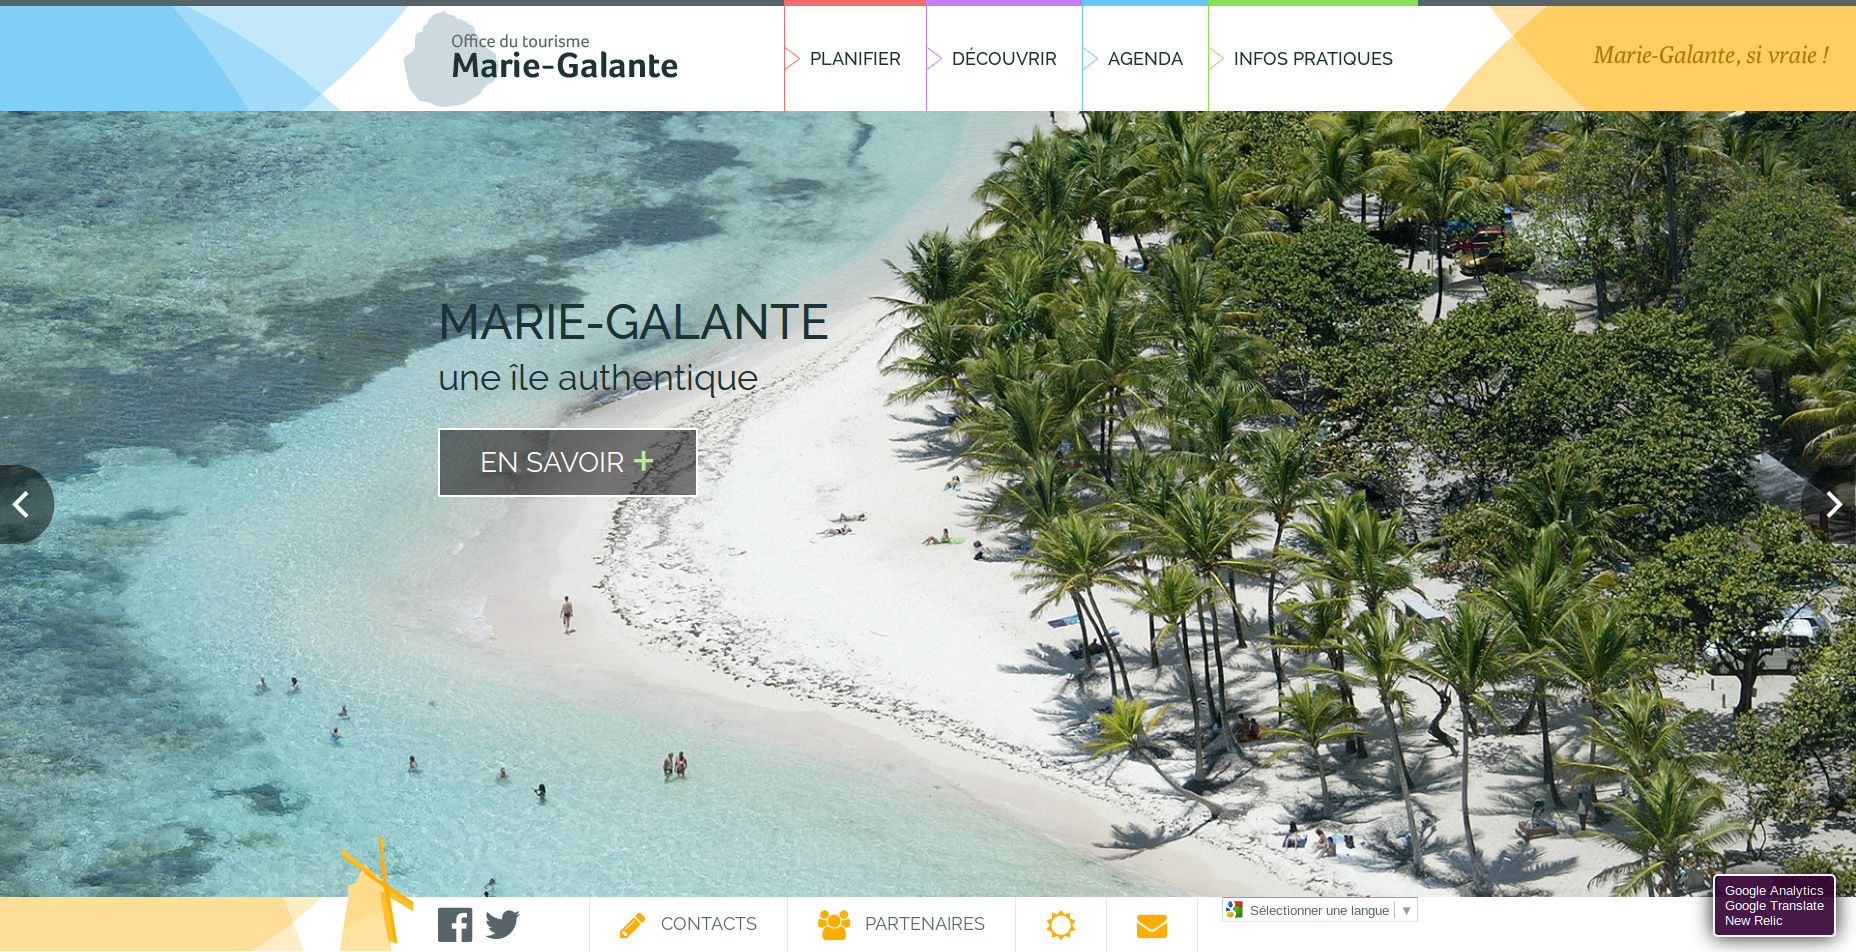 Office de Tourisme de Marie Galante